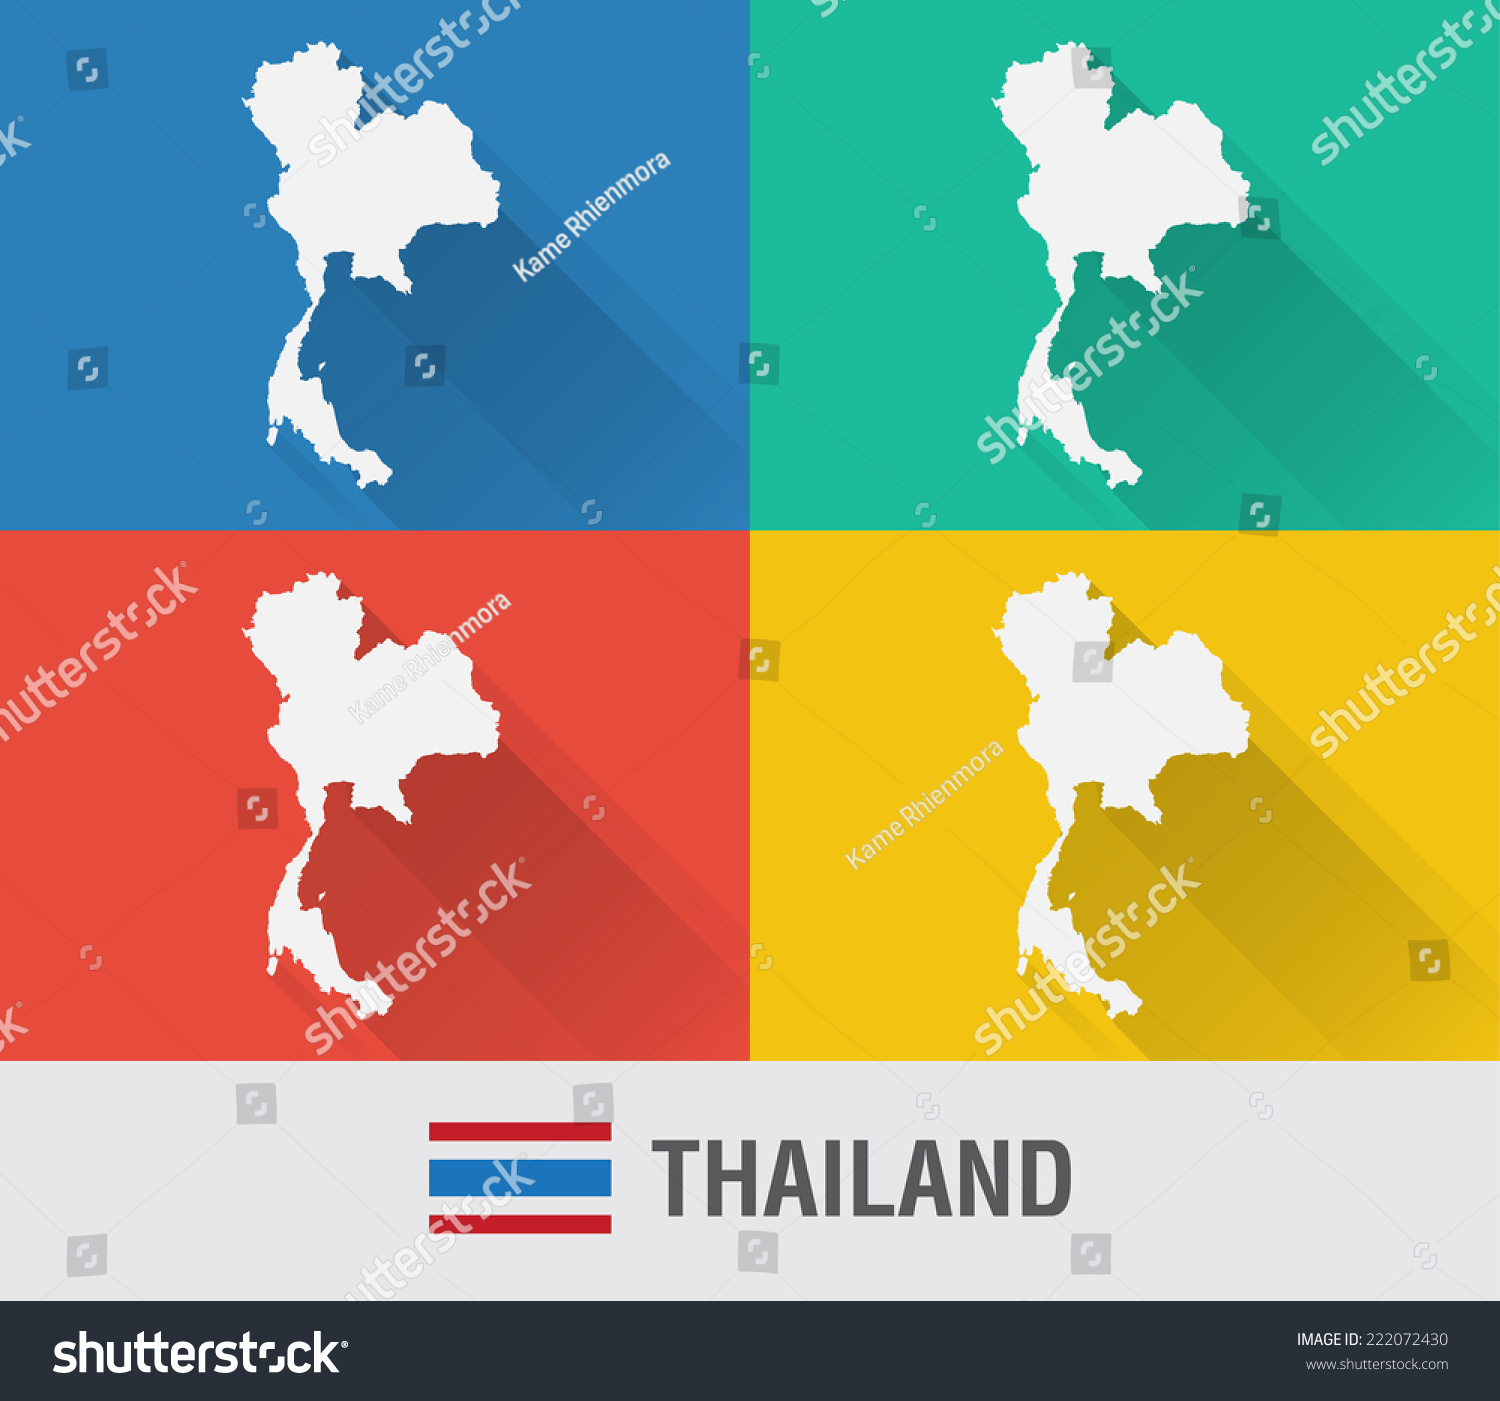 Thailand world map flat style 4 vectores en stock 222072430 thailand world map in flat style with 4 colors modern map design gumiabroncs